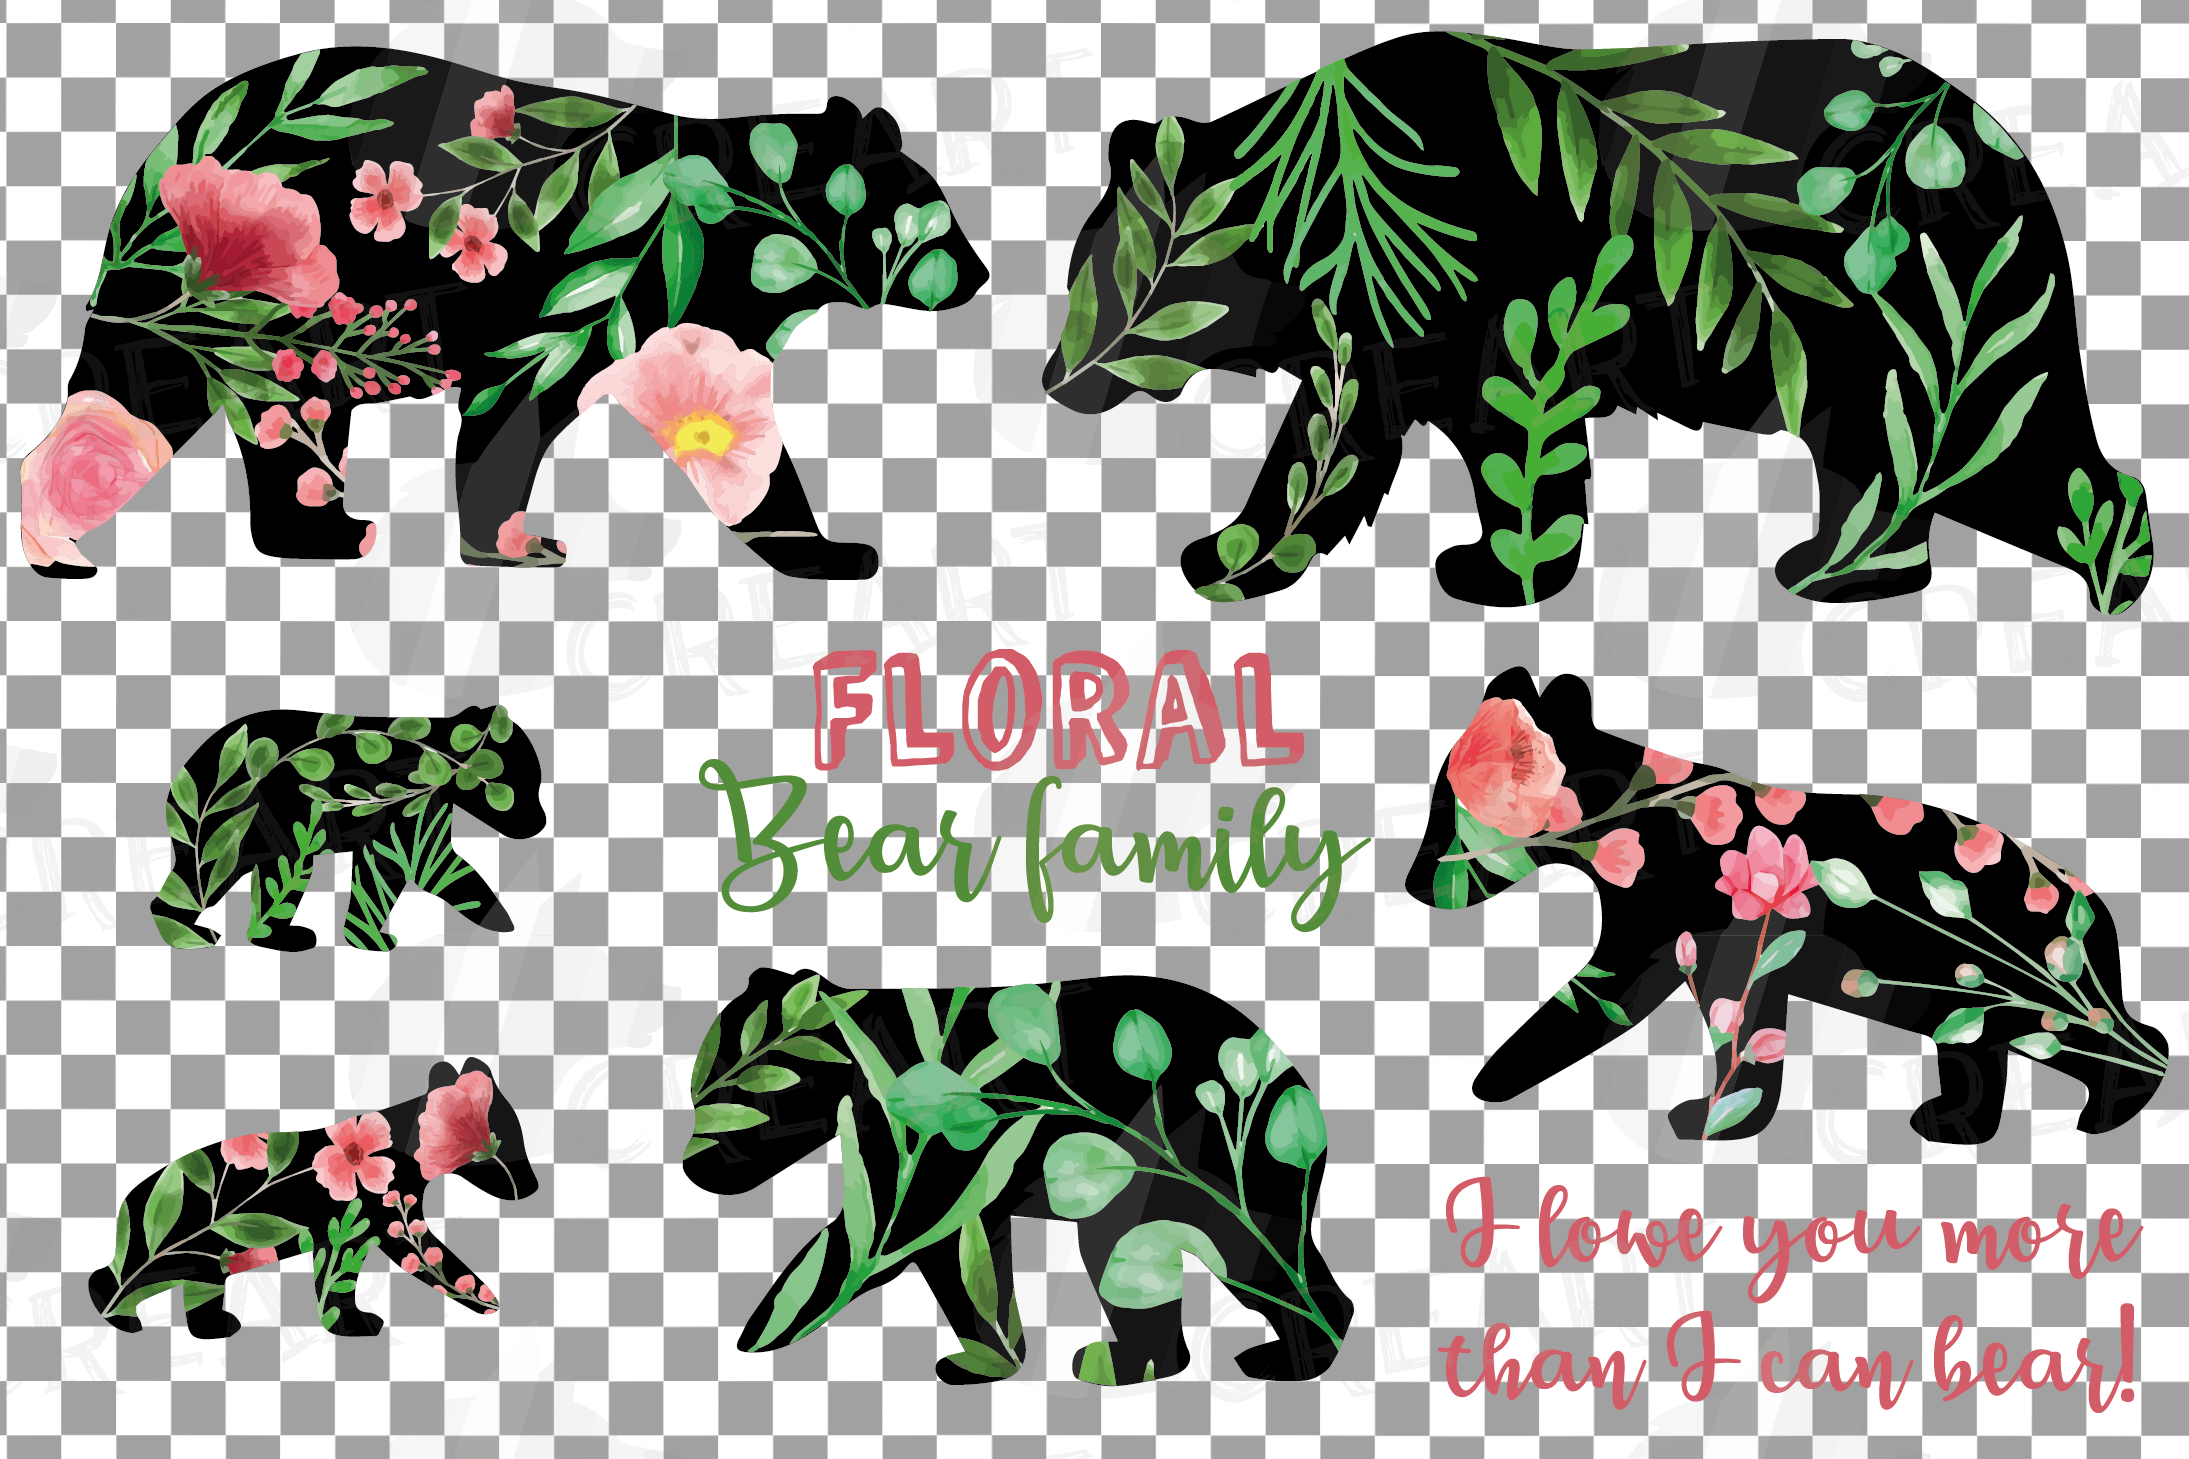 Floral bear family, sister, brother, baby, papa and mama example image 22